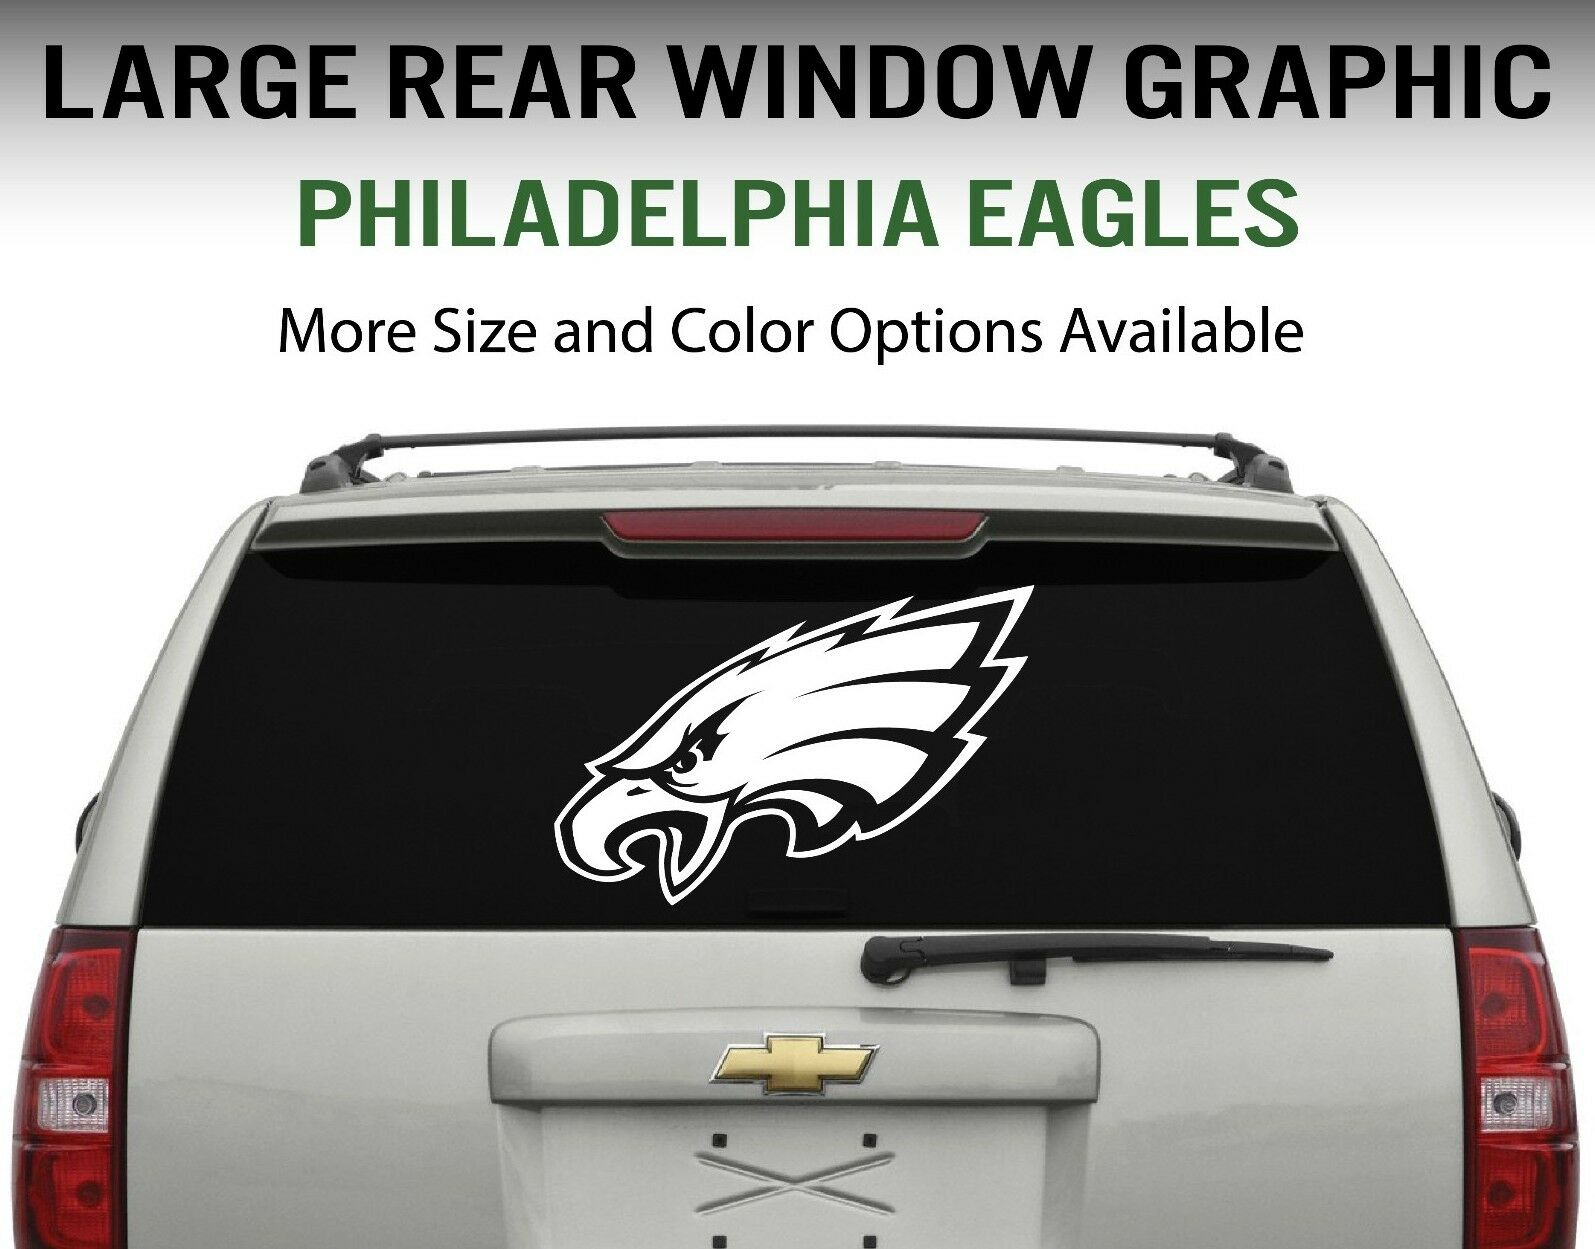 Philadelphia eagles window decal graphic sticker car truck suv choose size